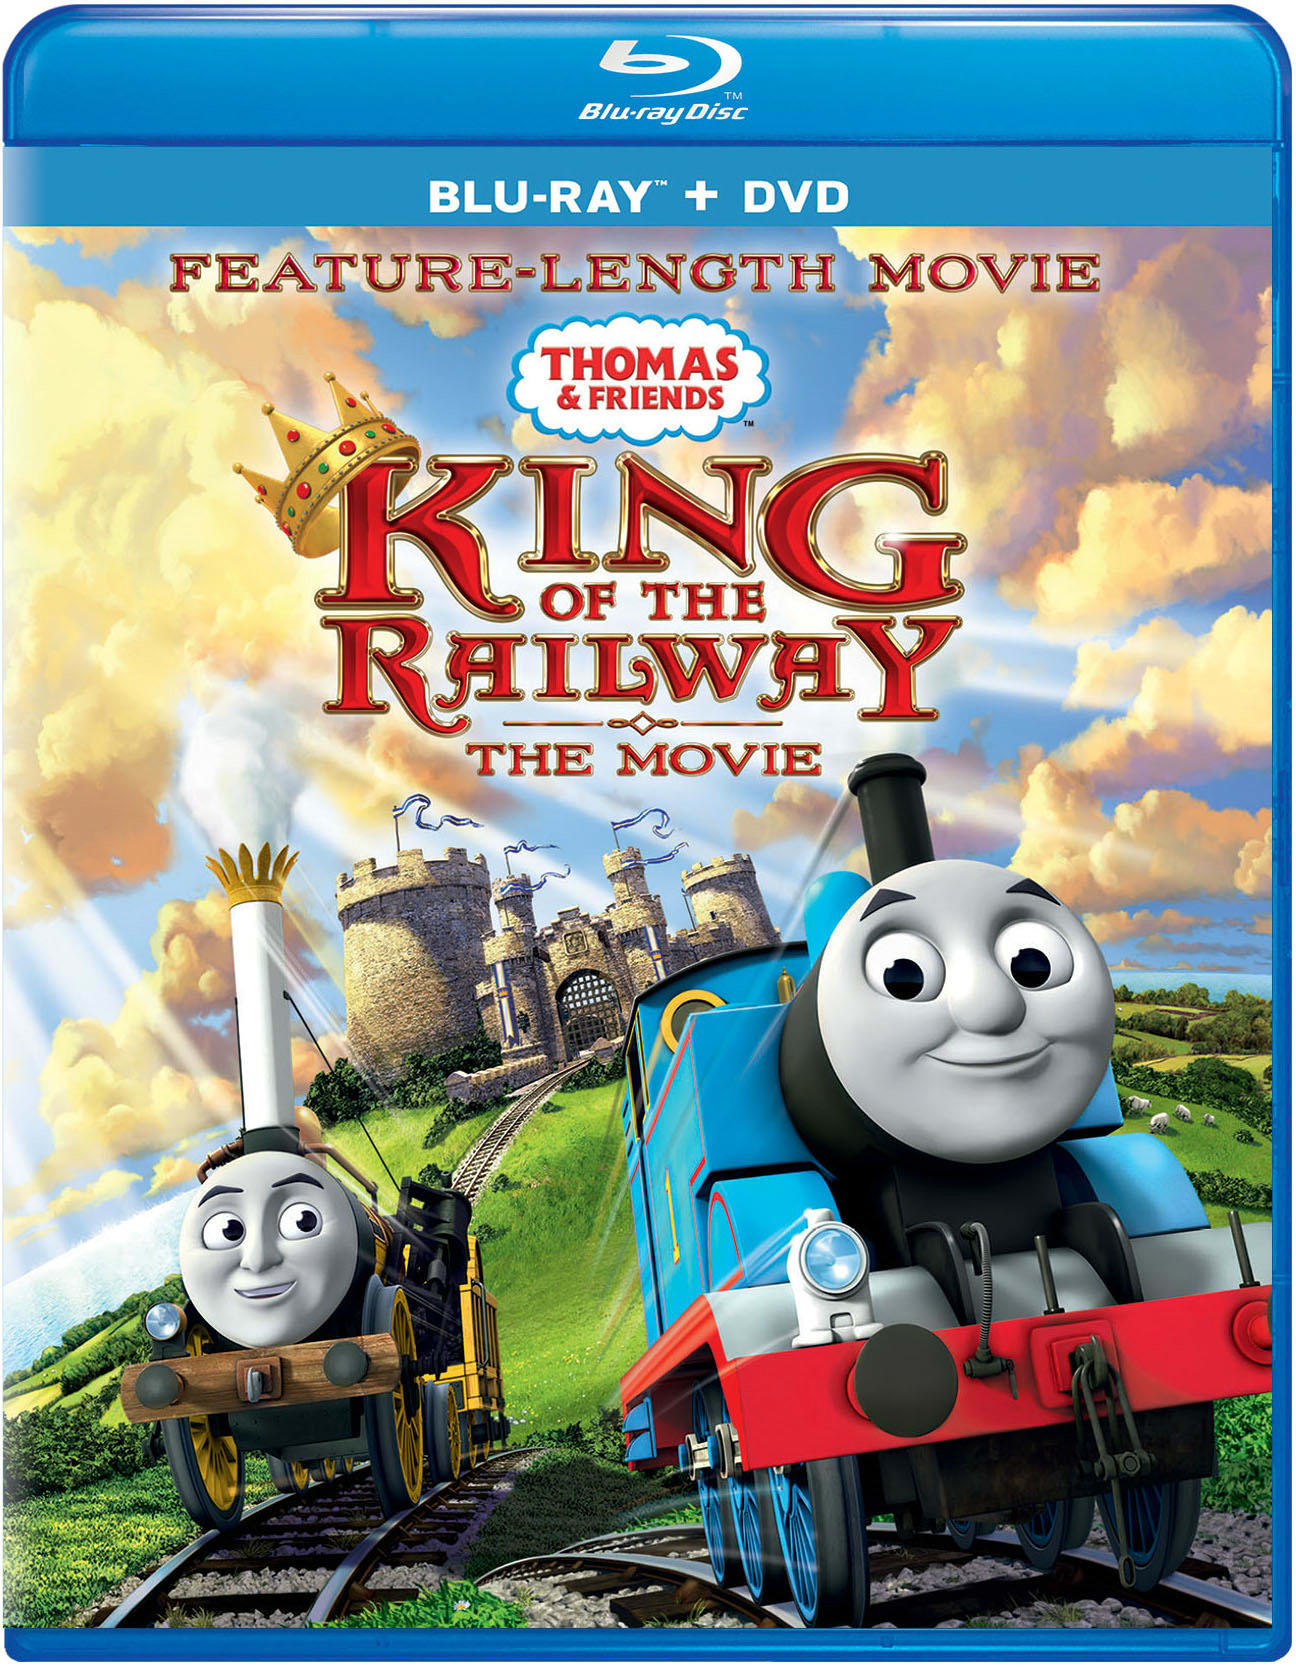 Thomas & Friends: King of the Railway - The Movie (Digital) [Blu-ray]